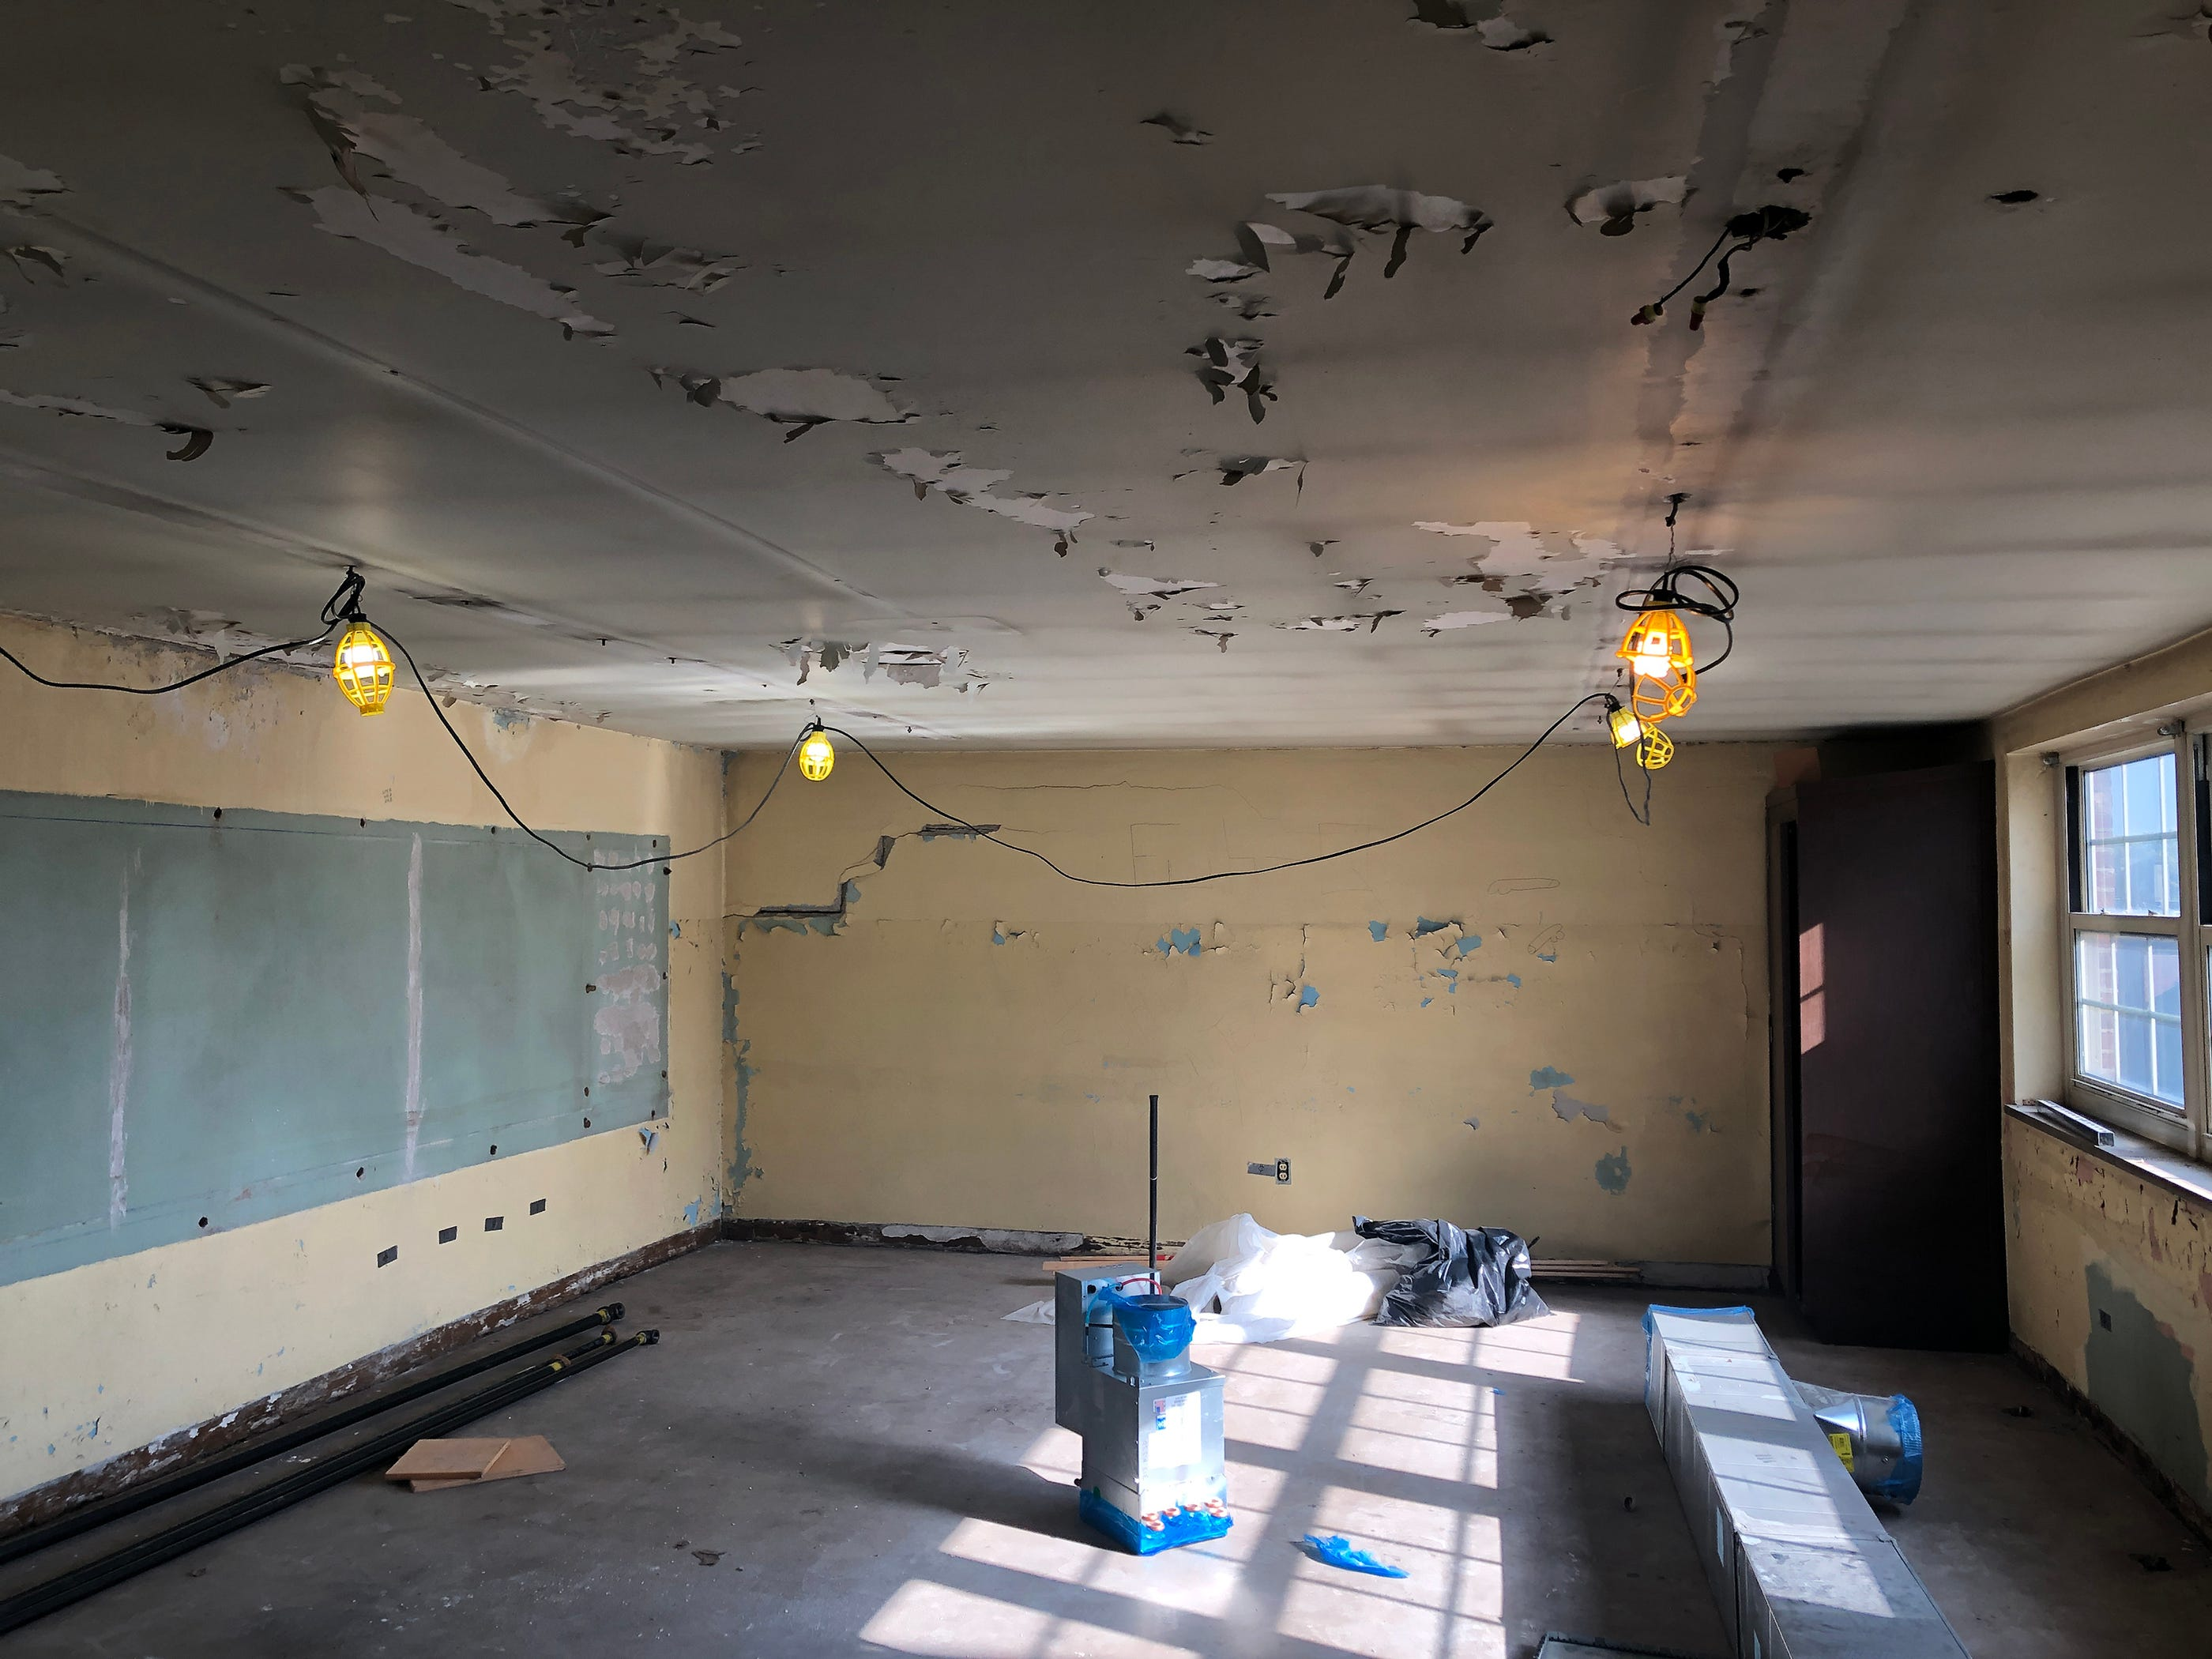 The third floor at the Academy @ Shawnee has stood frozen in time since it was abandoned in 1981 because of shrinking enrollment at the school. It's now part of a new renovation project.